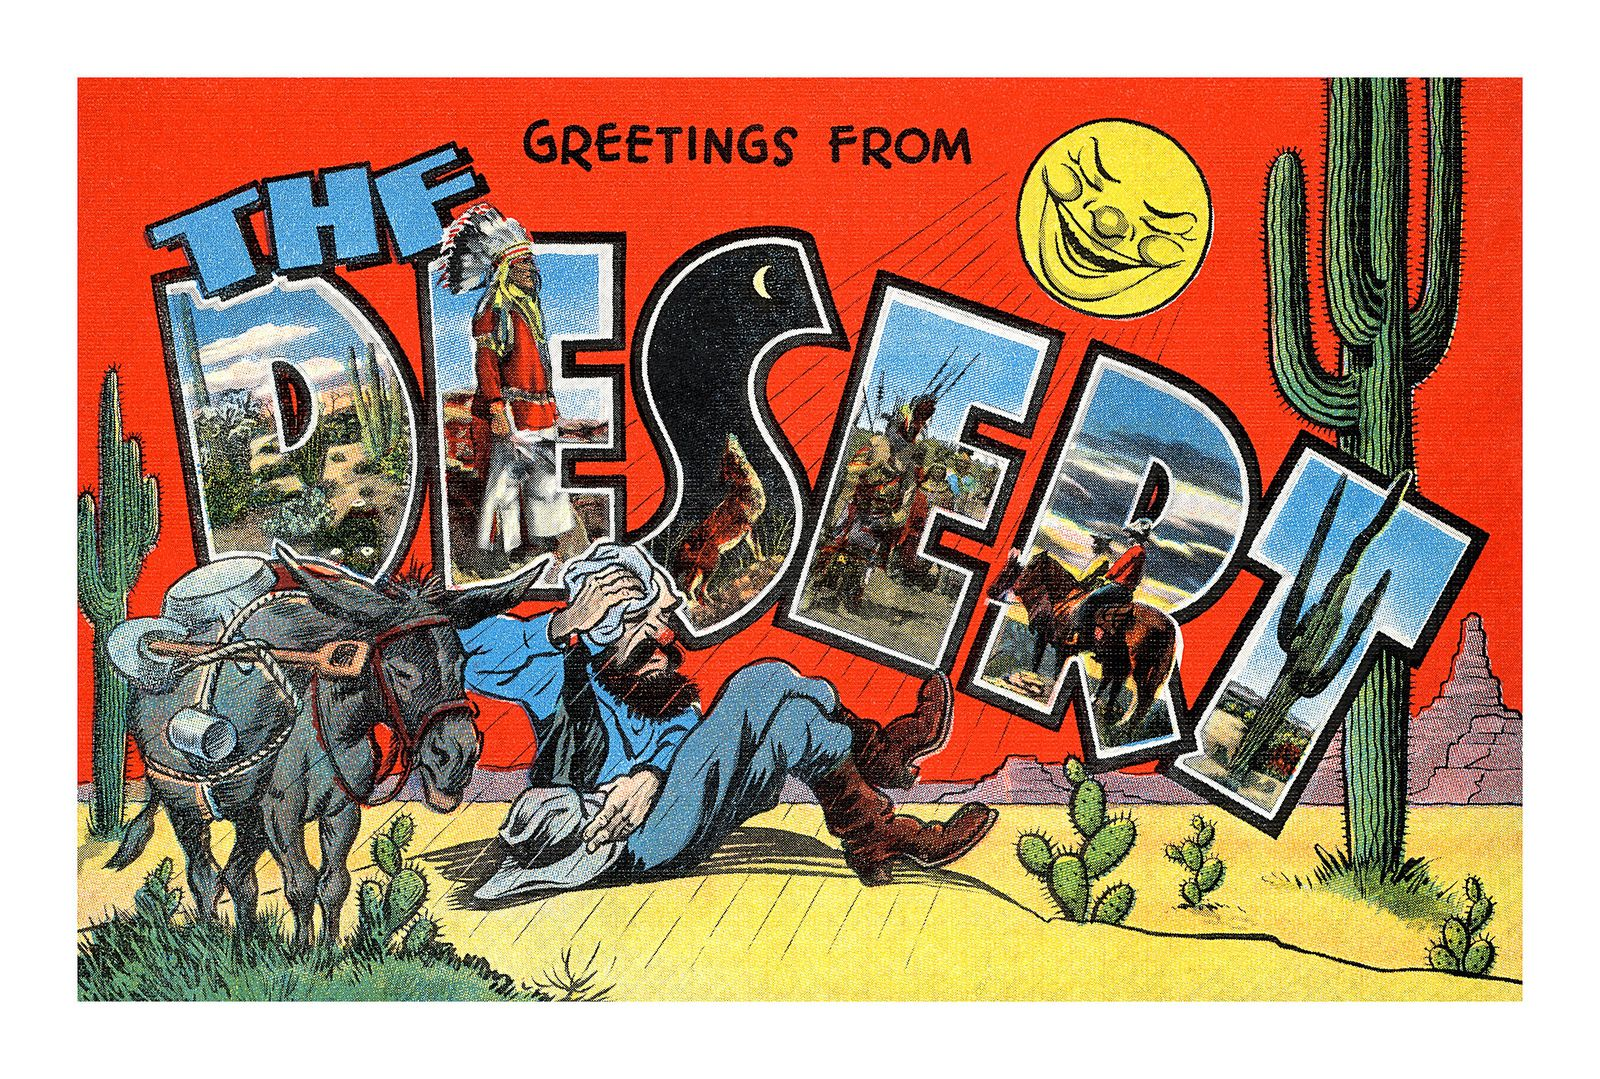 Greetings from The Moon Large Letter Humor Postcard